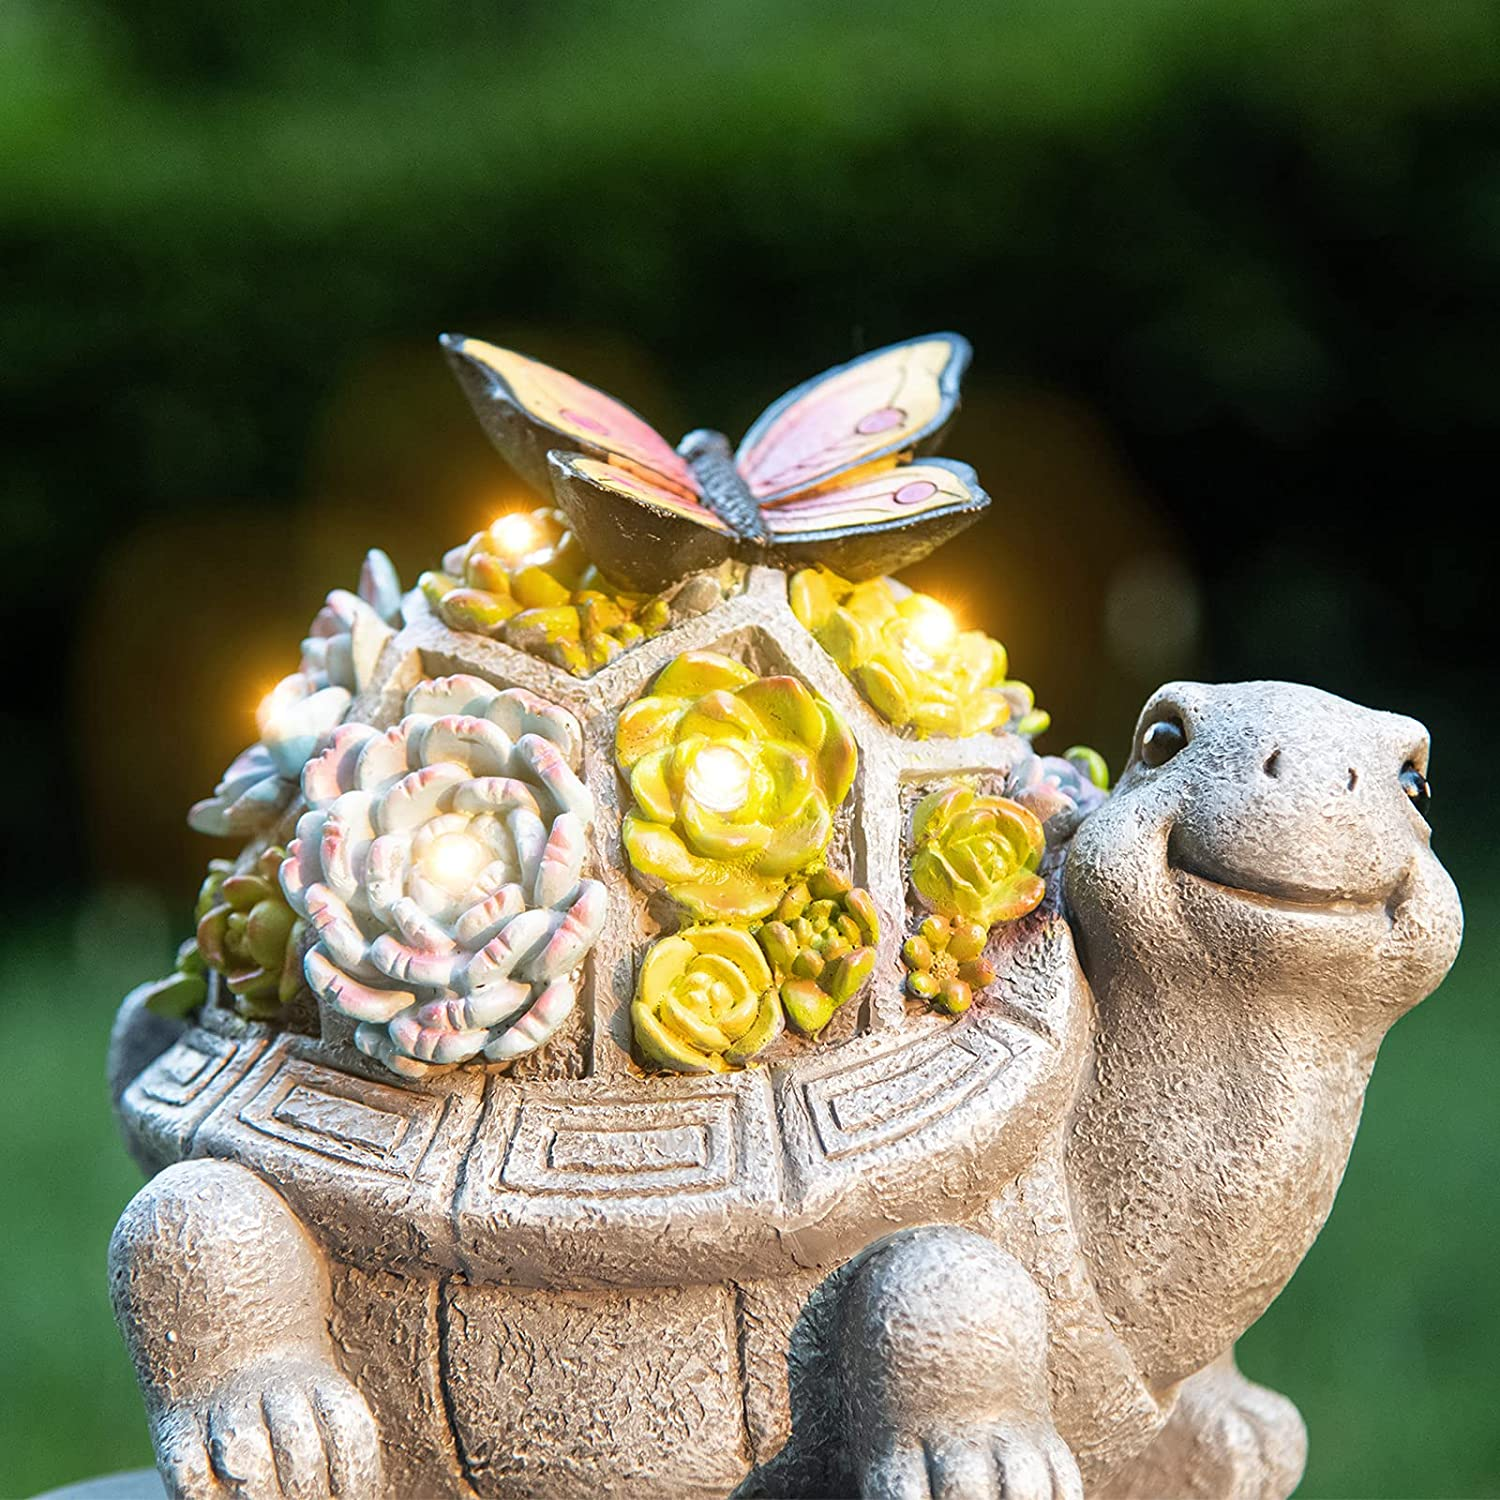 Turtle Outdoor Decor, Solar Garden Statue with LED Lights and Succulents for Patio, Lawn, Deck, Resin Yard Art Decoration, Fall Winter Housewarming Ornament Gift